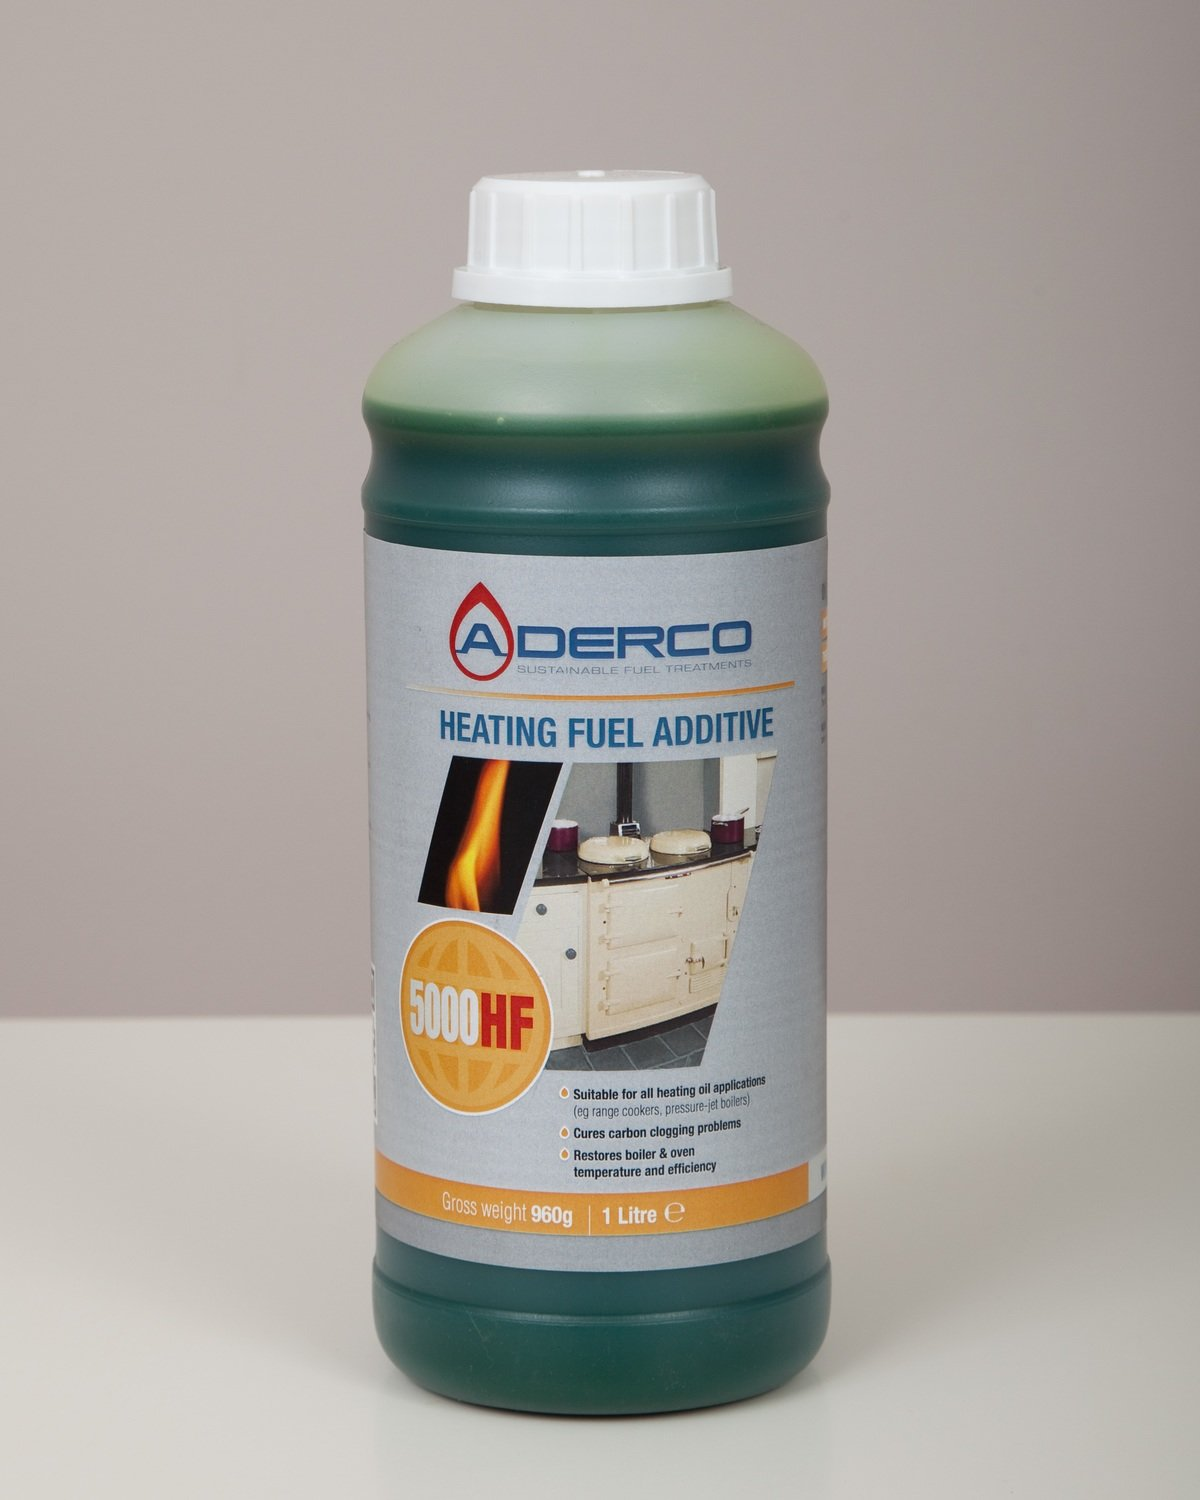 Aderco 5000 Heating Fuel Additive 1 litre